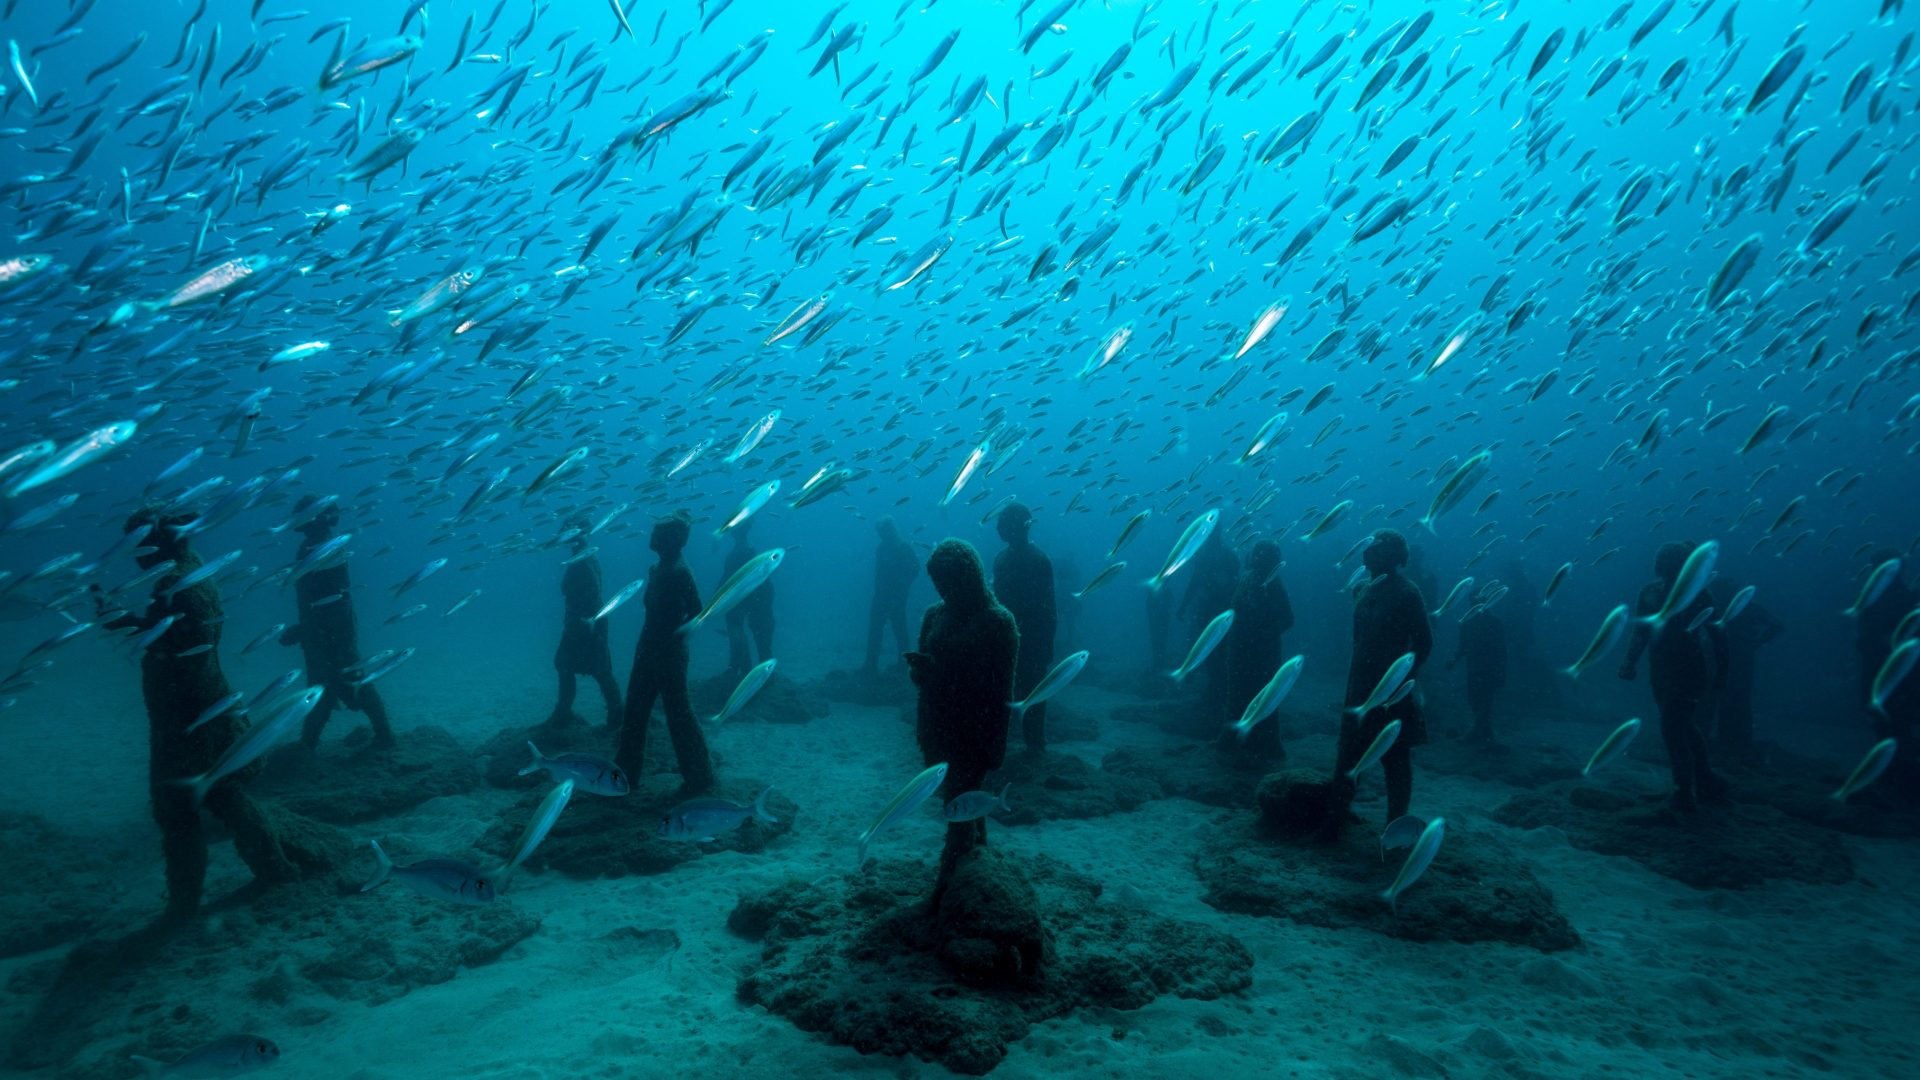 A deep dive into an underwater art world